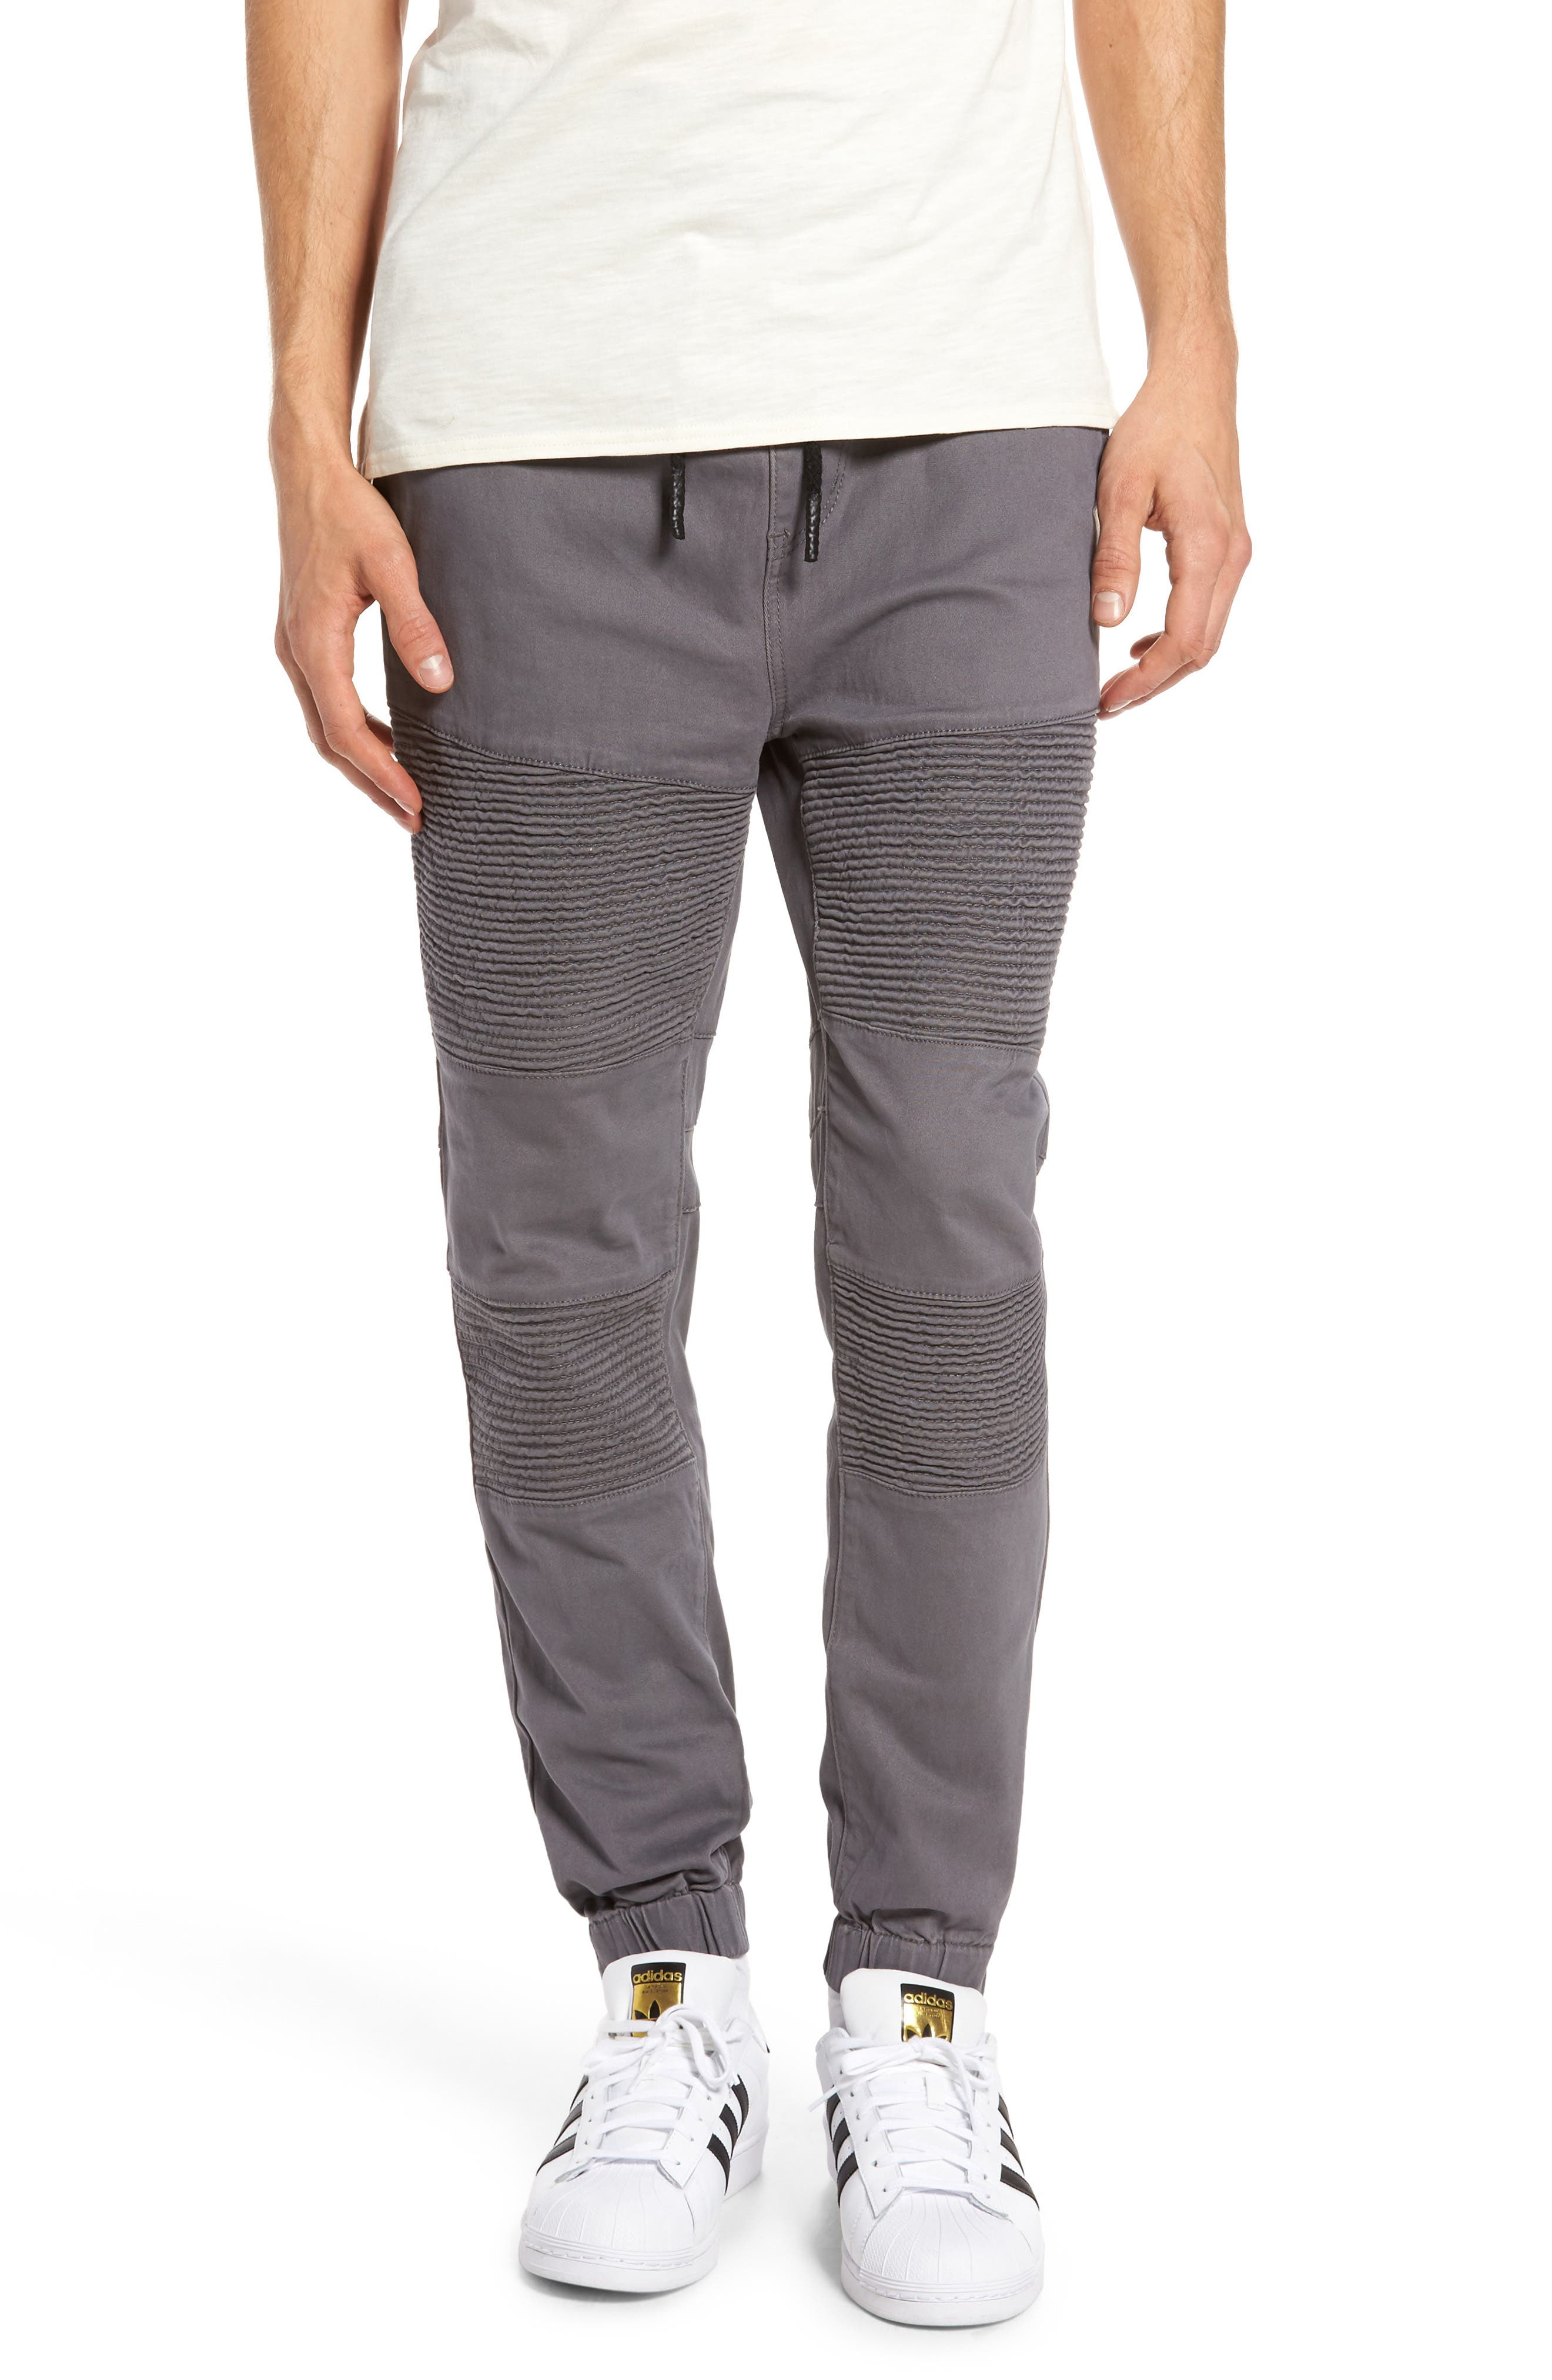 Main Image - Lira Clothing Cardinal Jogger Pants